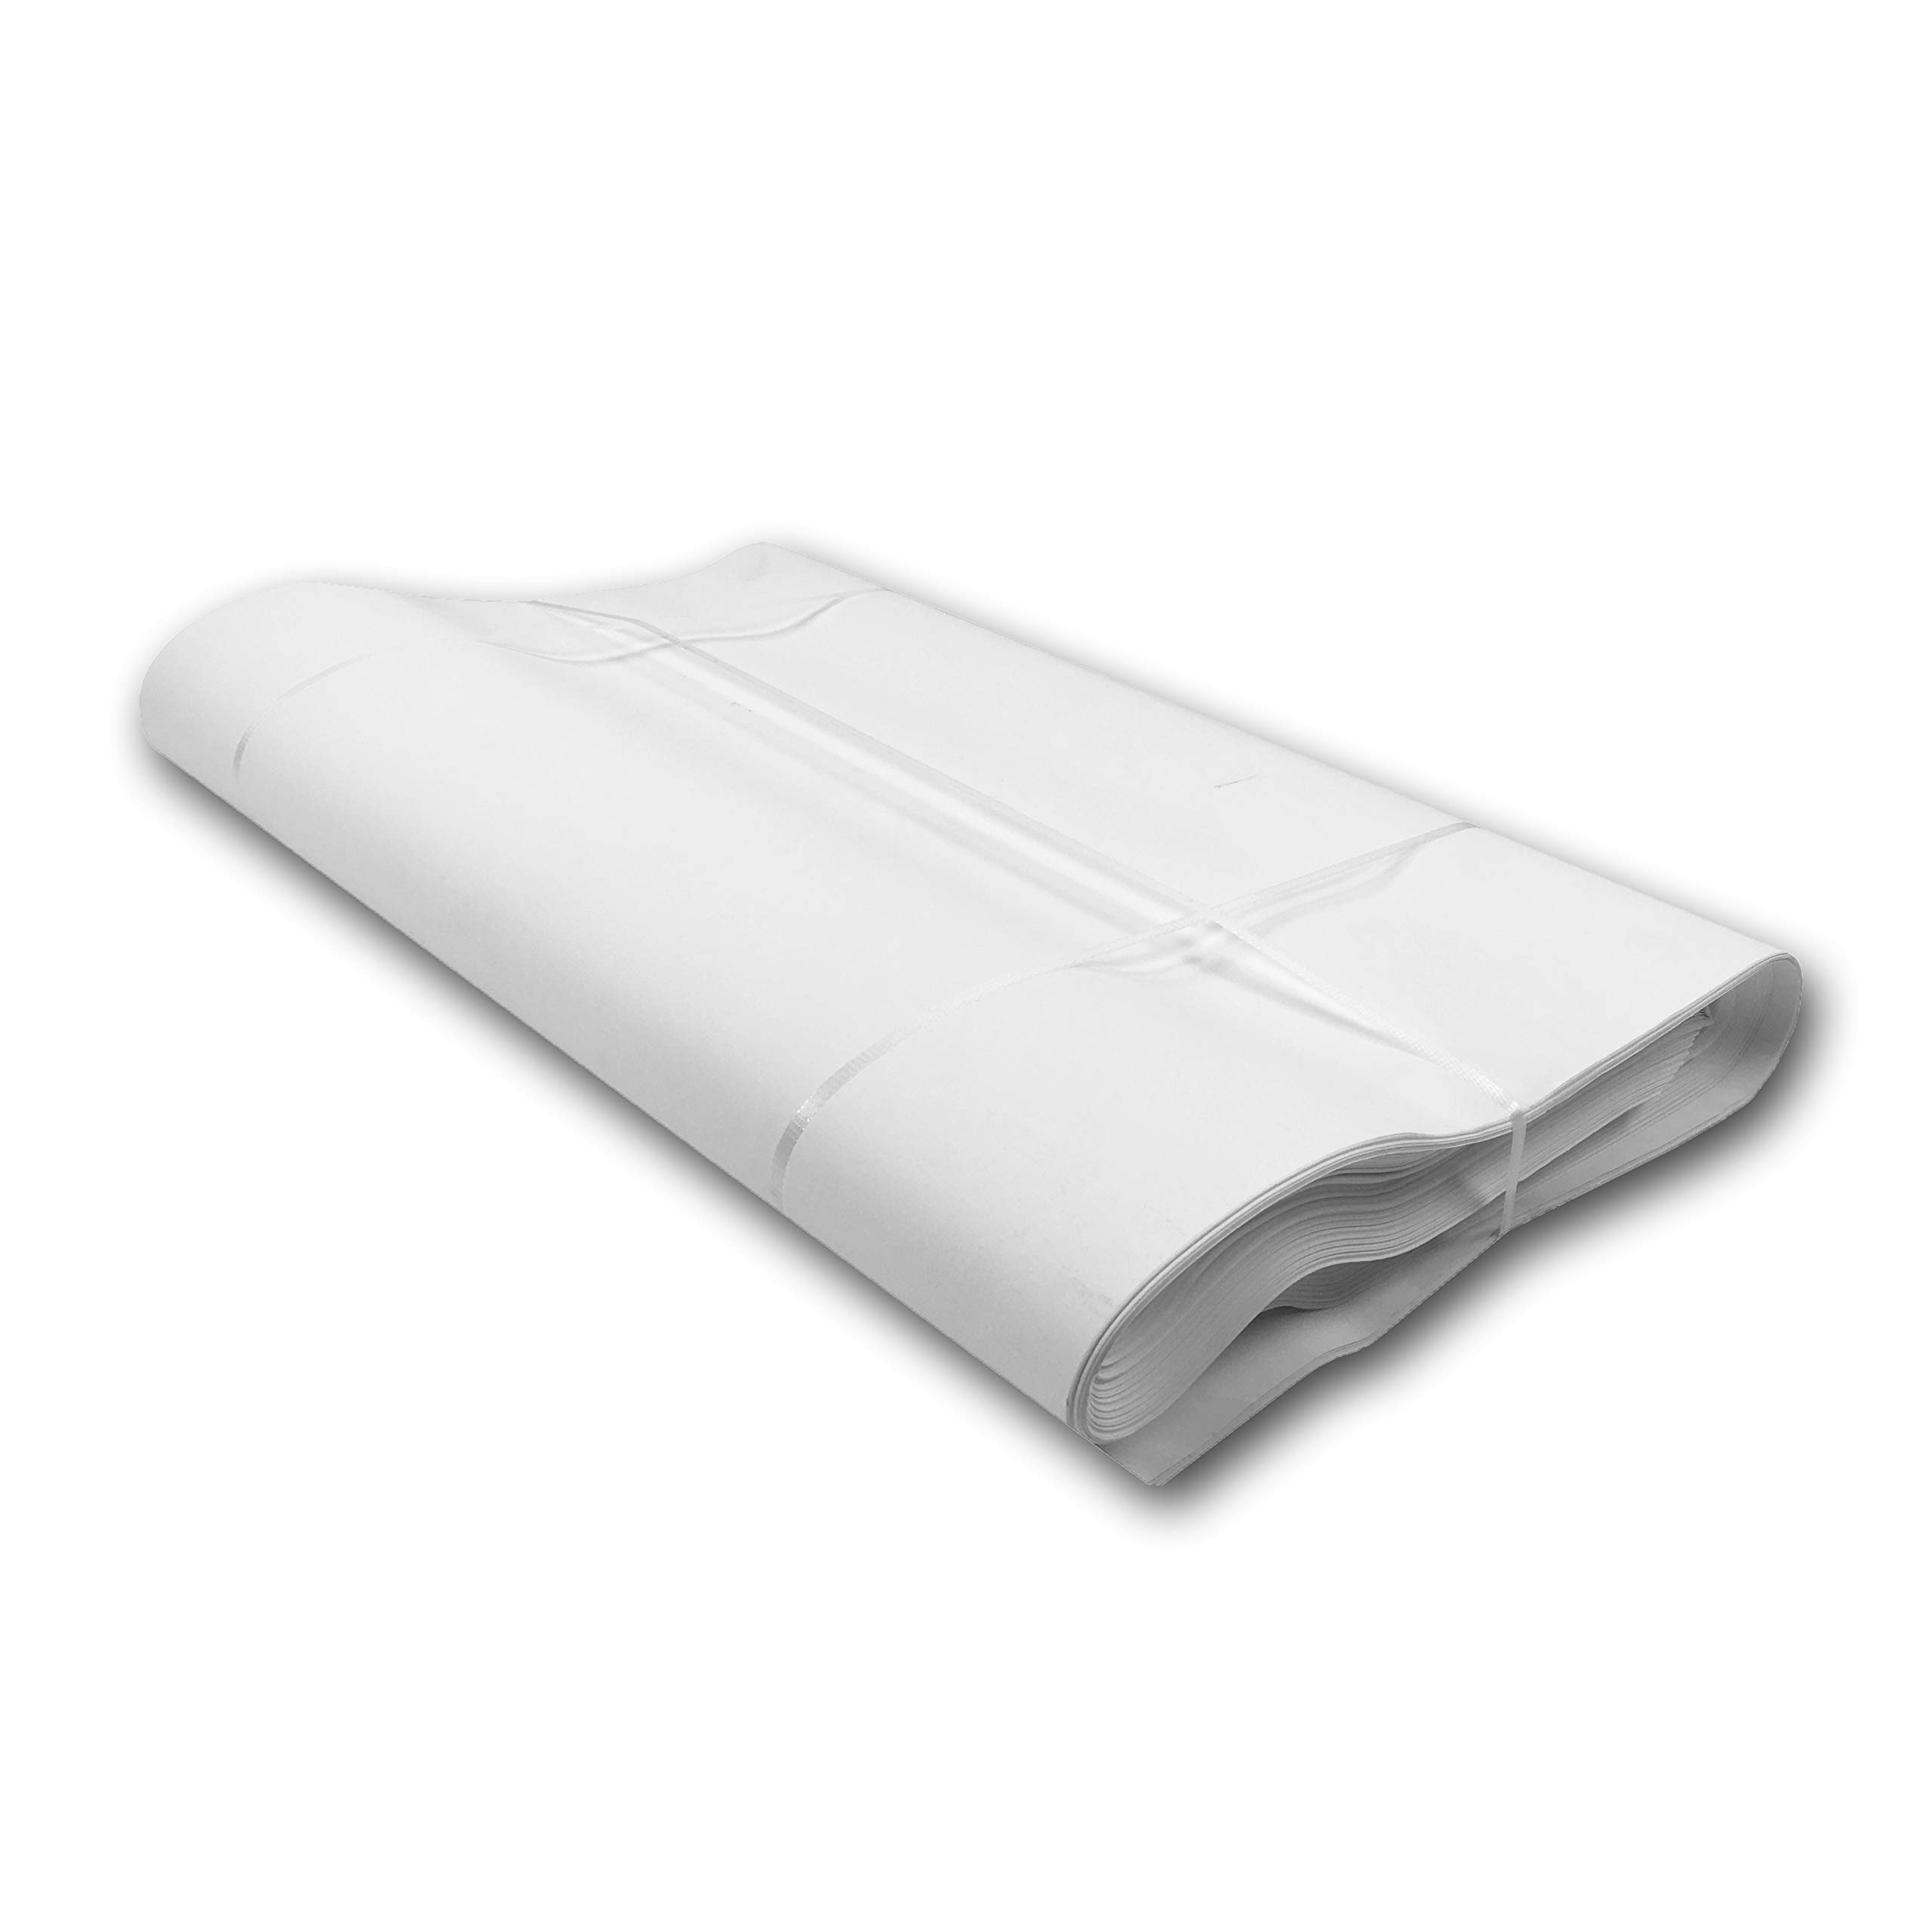 uBoxes Newsprint Packing Paper, 25 lbs, Approx 500 Sheets by Uboxes